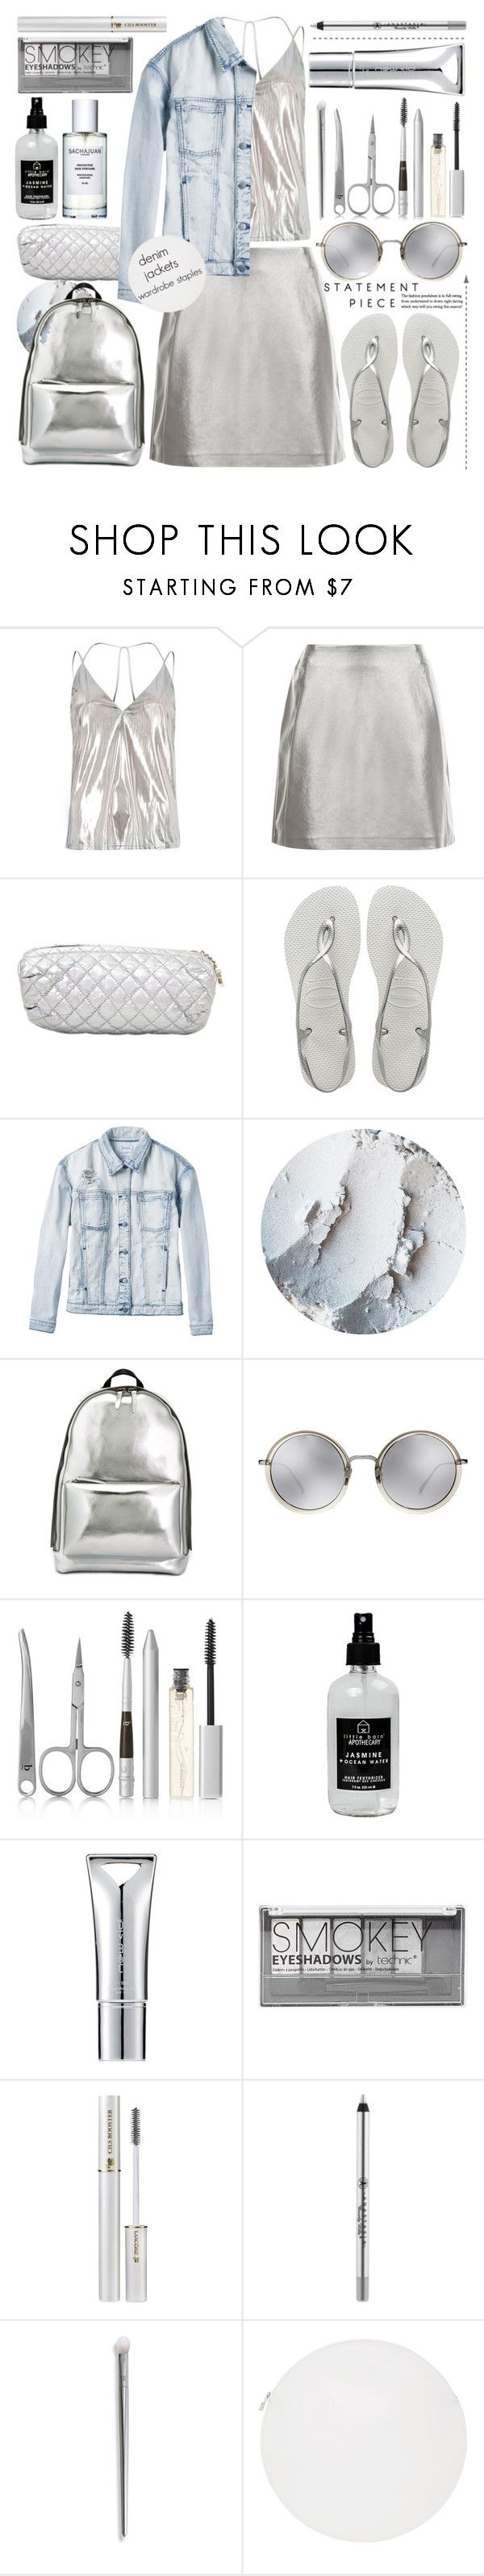 """""""Denim Jackets 4"""" by jan31 ❤ liked on Polyvore featuring River Island, New Look, Chanel, Havaianas, RVCA, 3.1 Phillip Lim, Linda Farrow, BBrowBar, Little Barn Apothecary and New CID Cosmetics"""